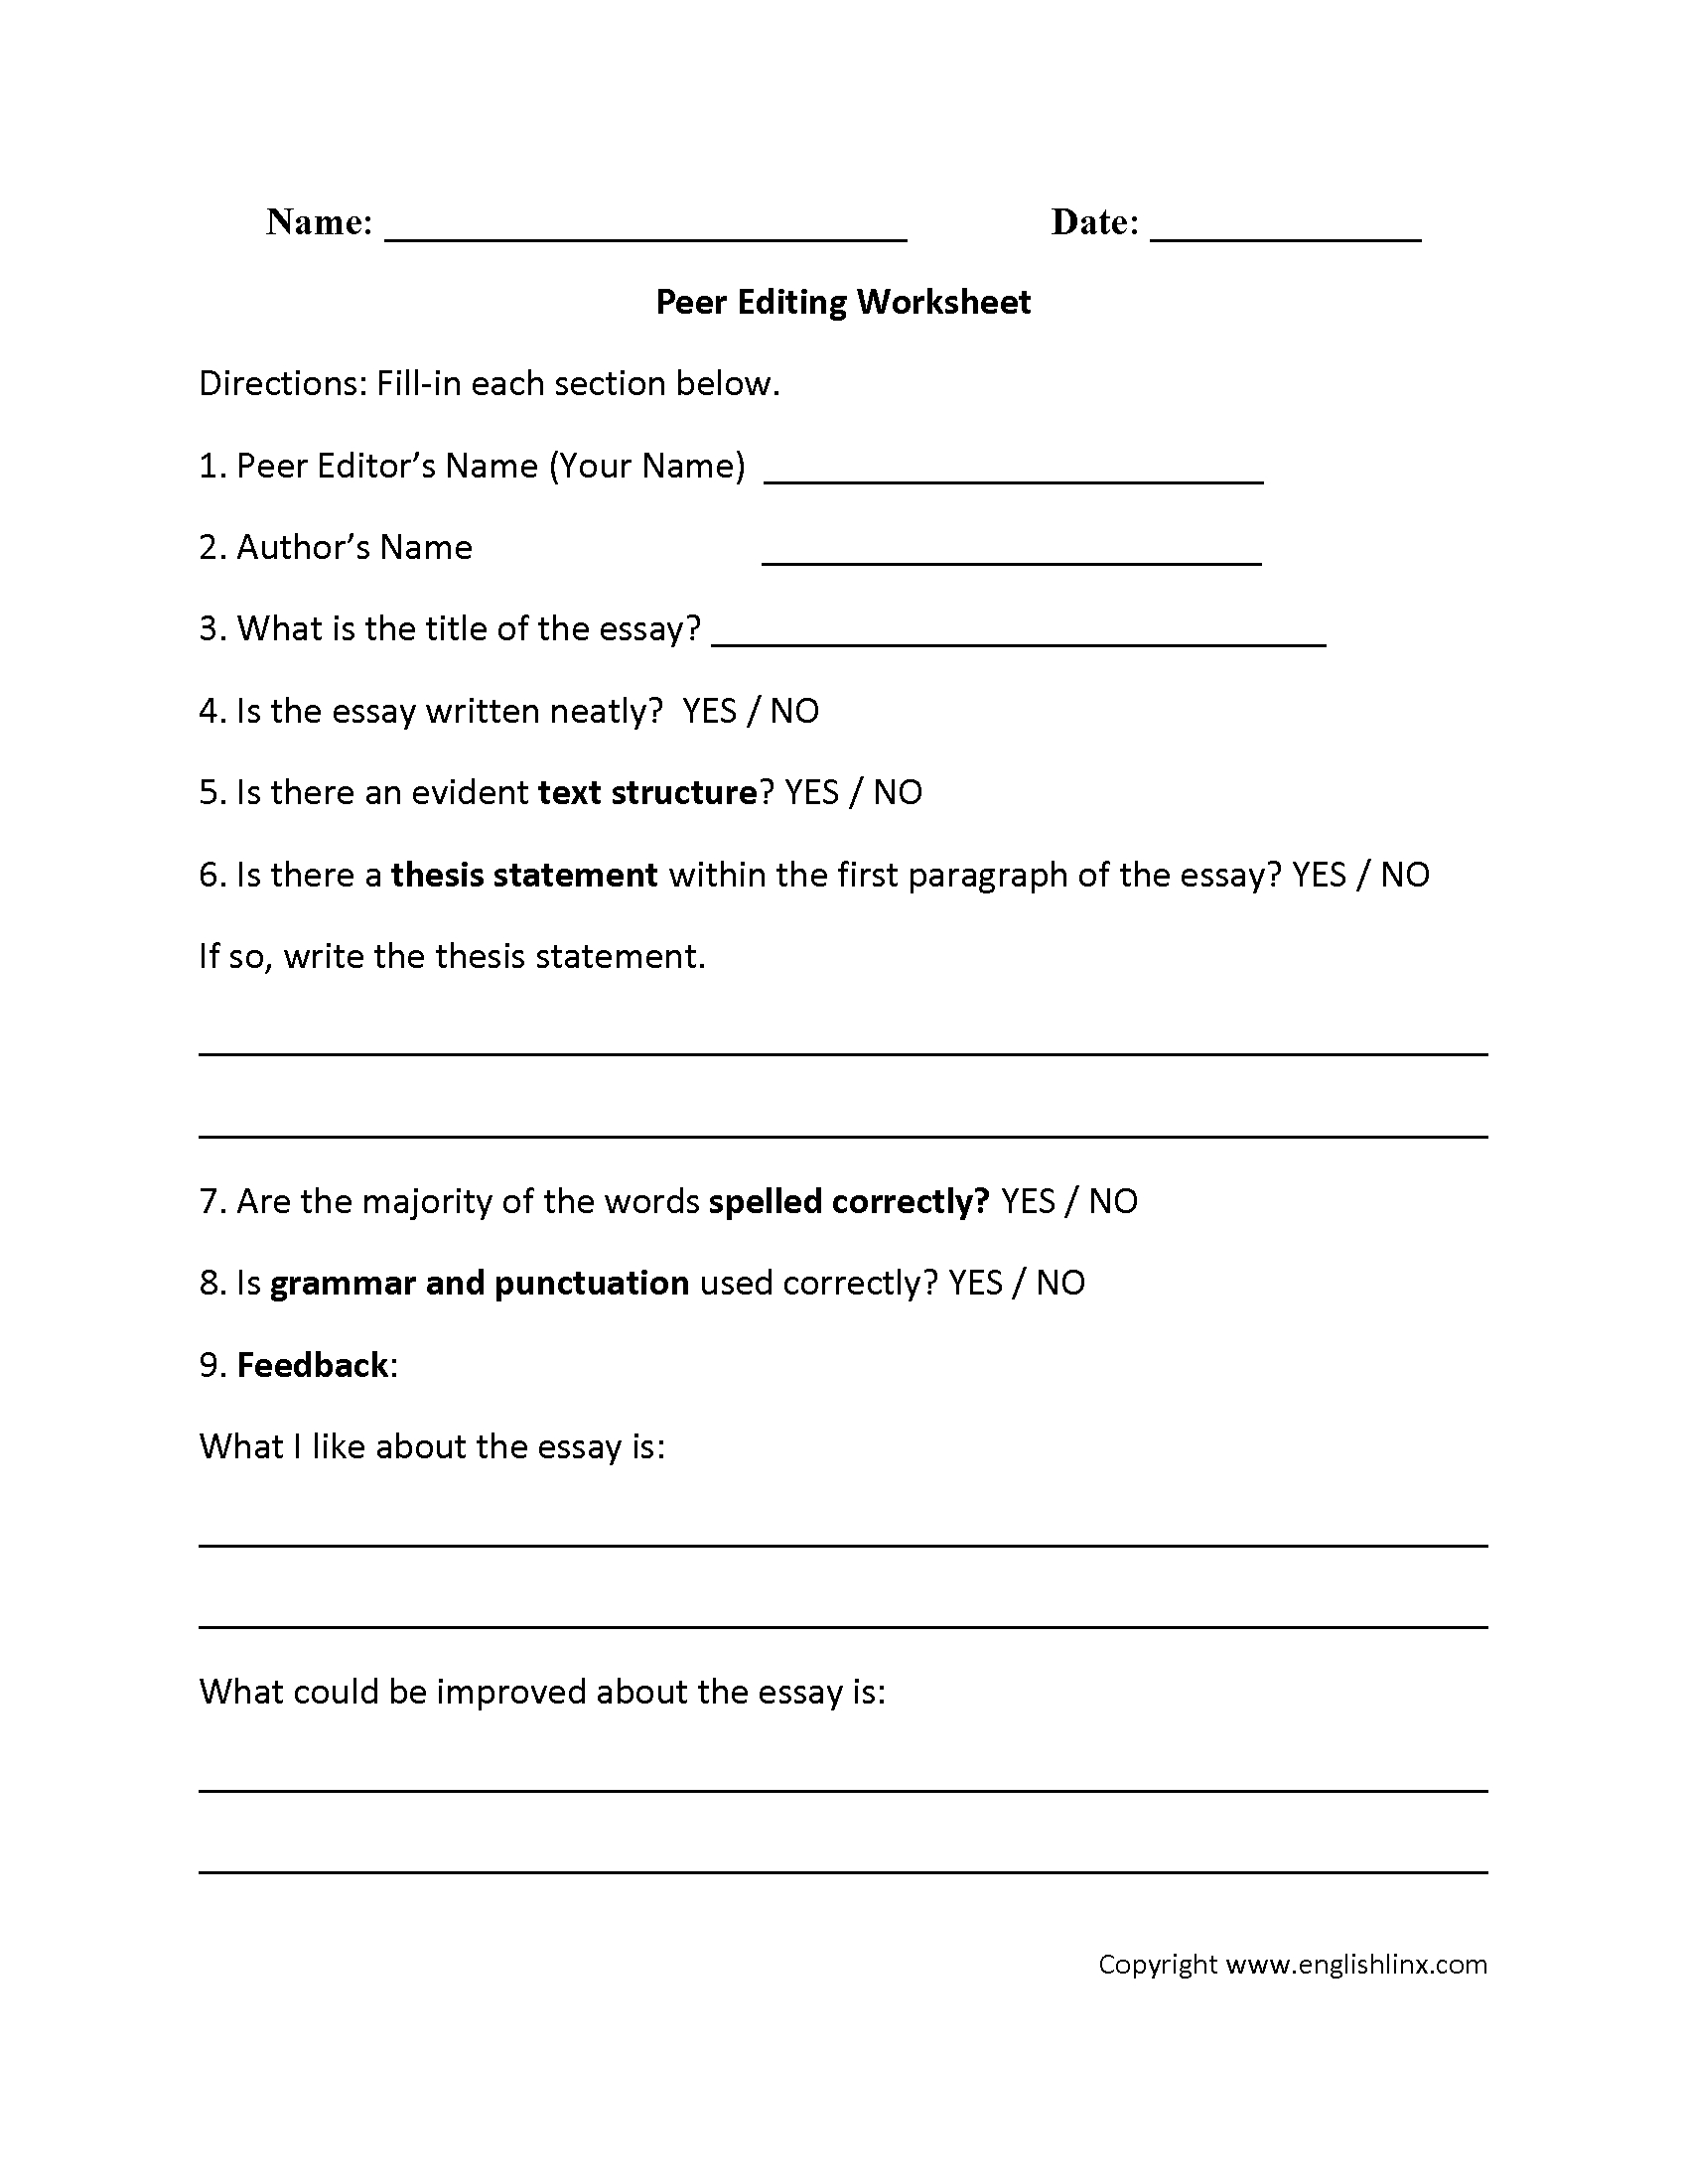 Free Printable Editing Worksheets For 5th Grade